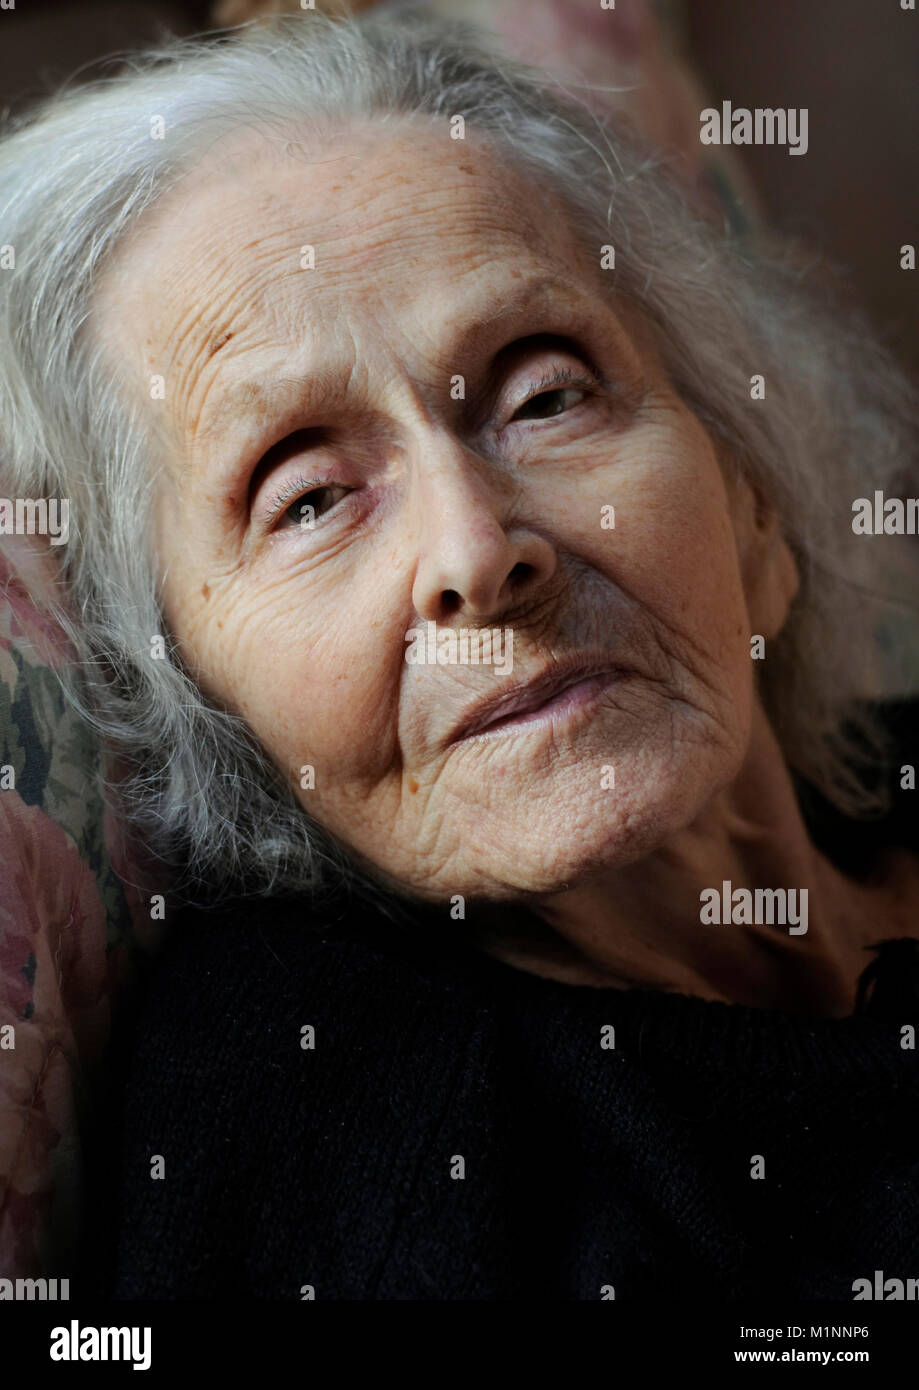 Beautiful old woman - Stock Image